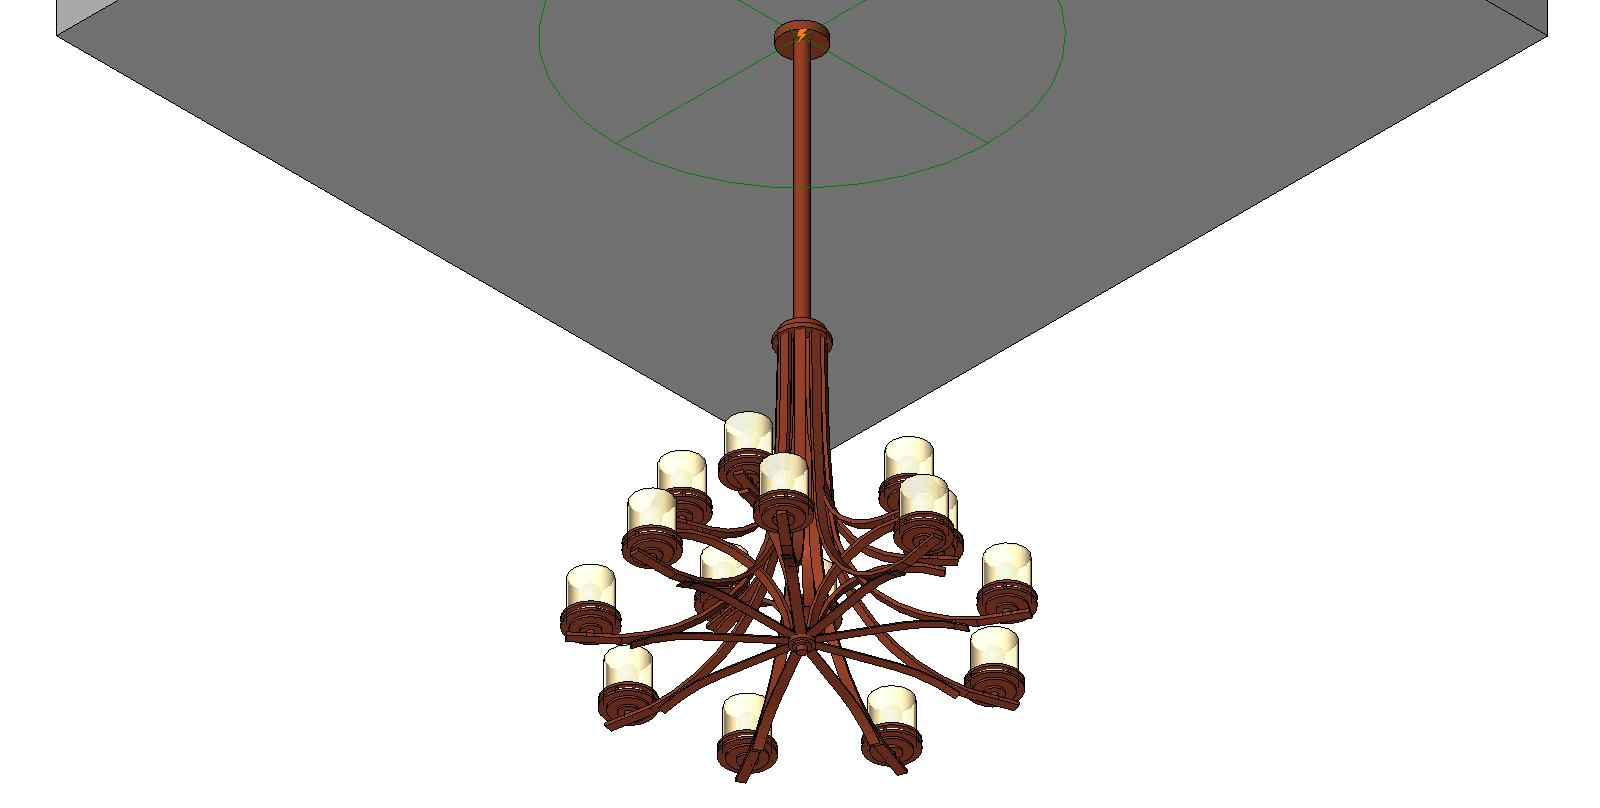 Interior Lighting Electrical Free Bim Objects Families